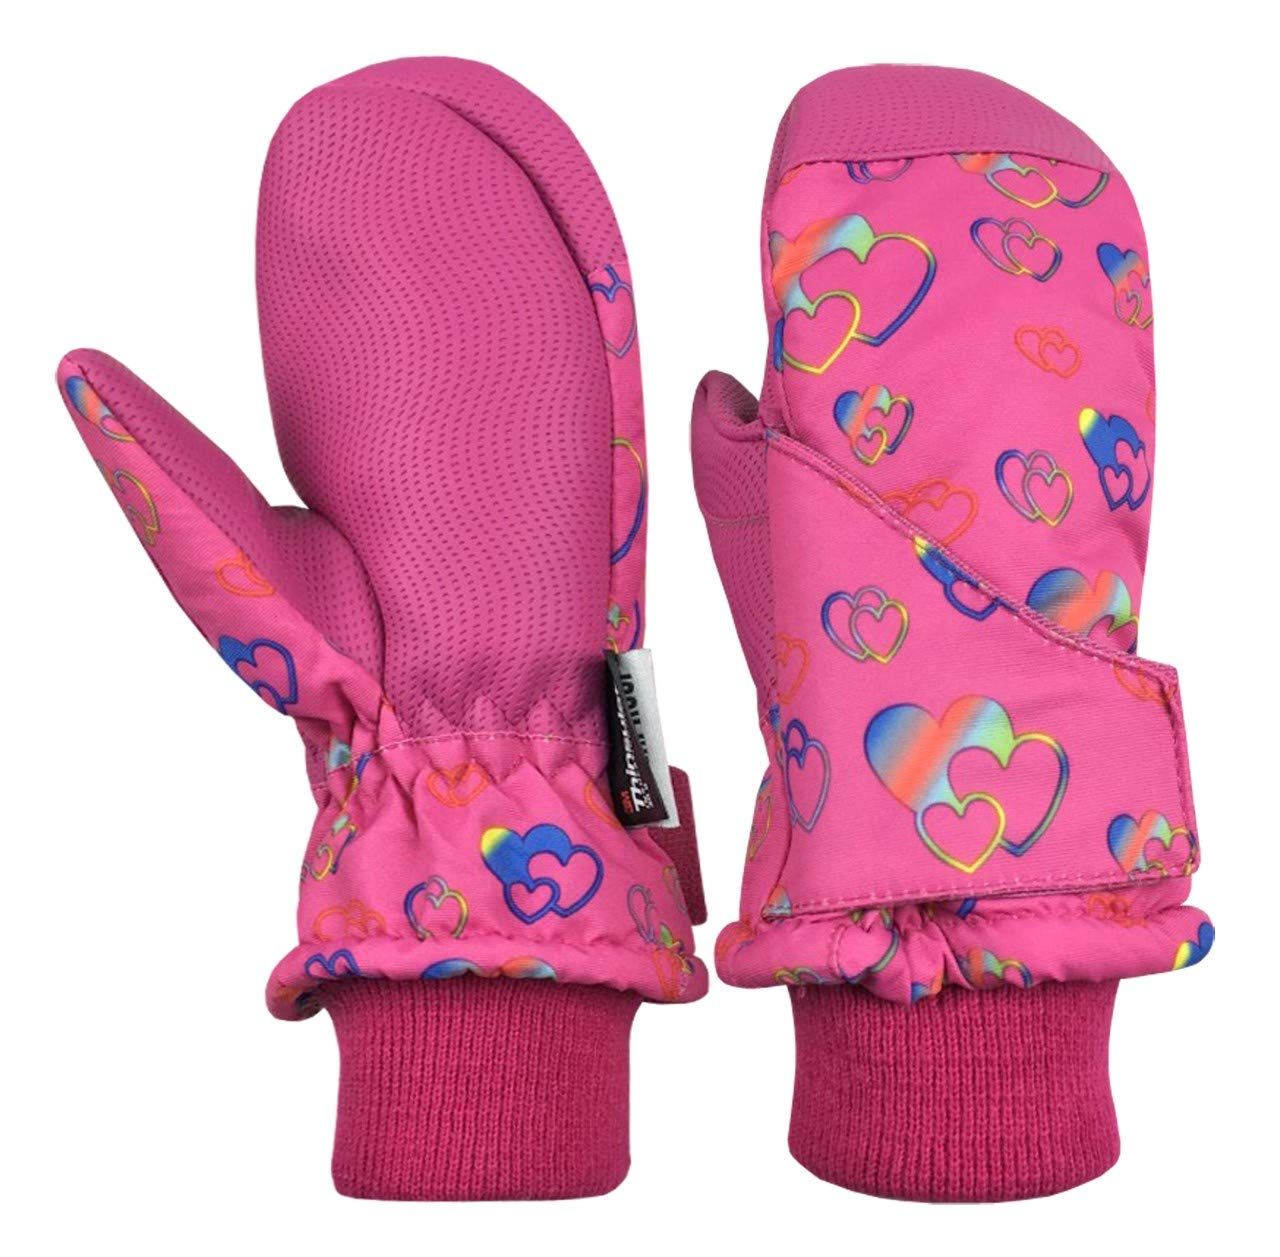 N'Ice Caps Kids and Baby Easy-On Wrap Waterproof Thinsulate Winter Snow Mitten (Fuchsia Hearts, 1-2 Years) by N'Ice Caps